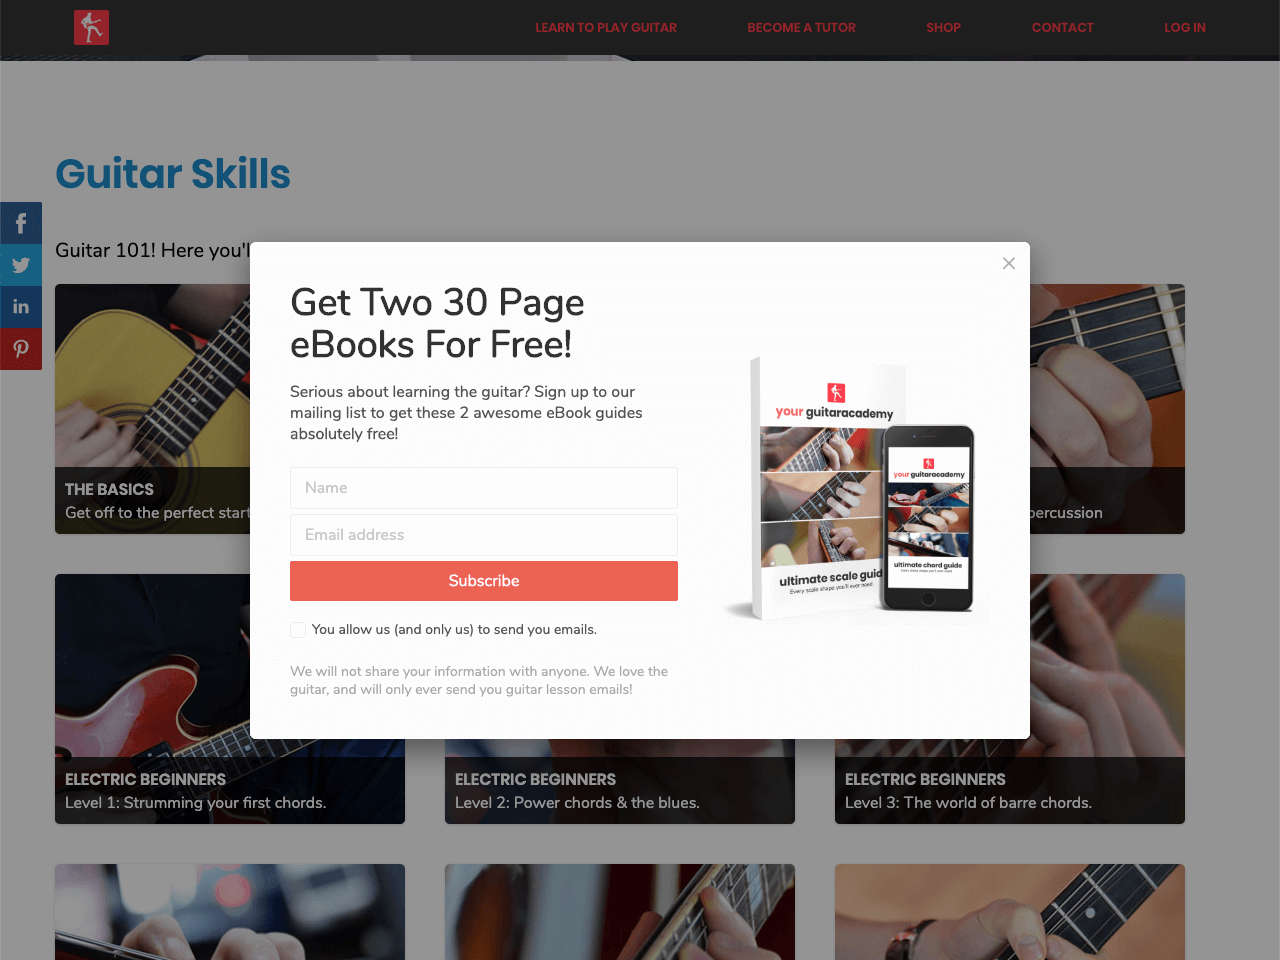 Your Guitar Academy offers two digital books on guitar lessons in exchange for an email address